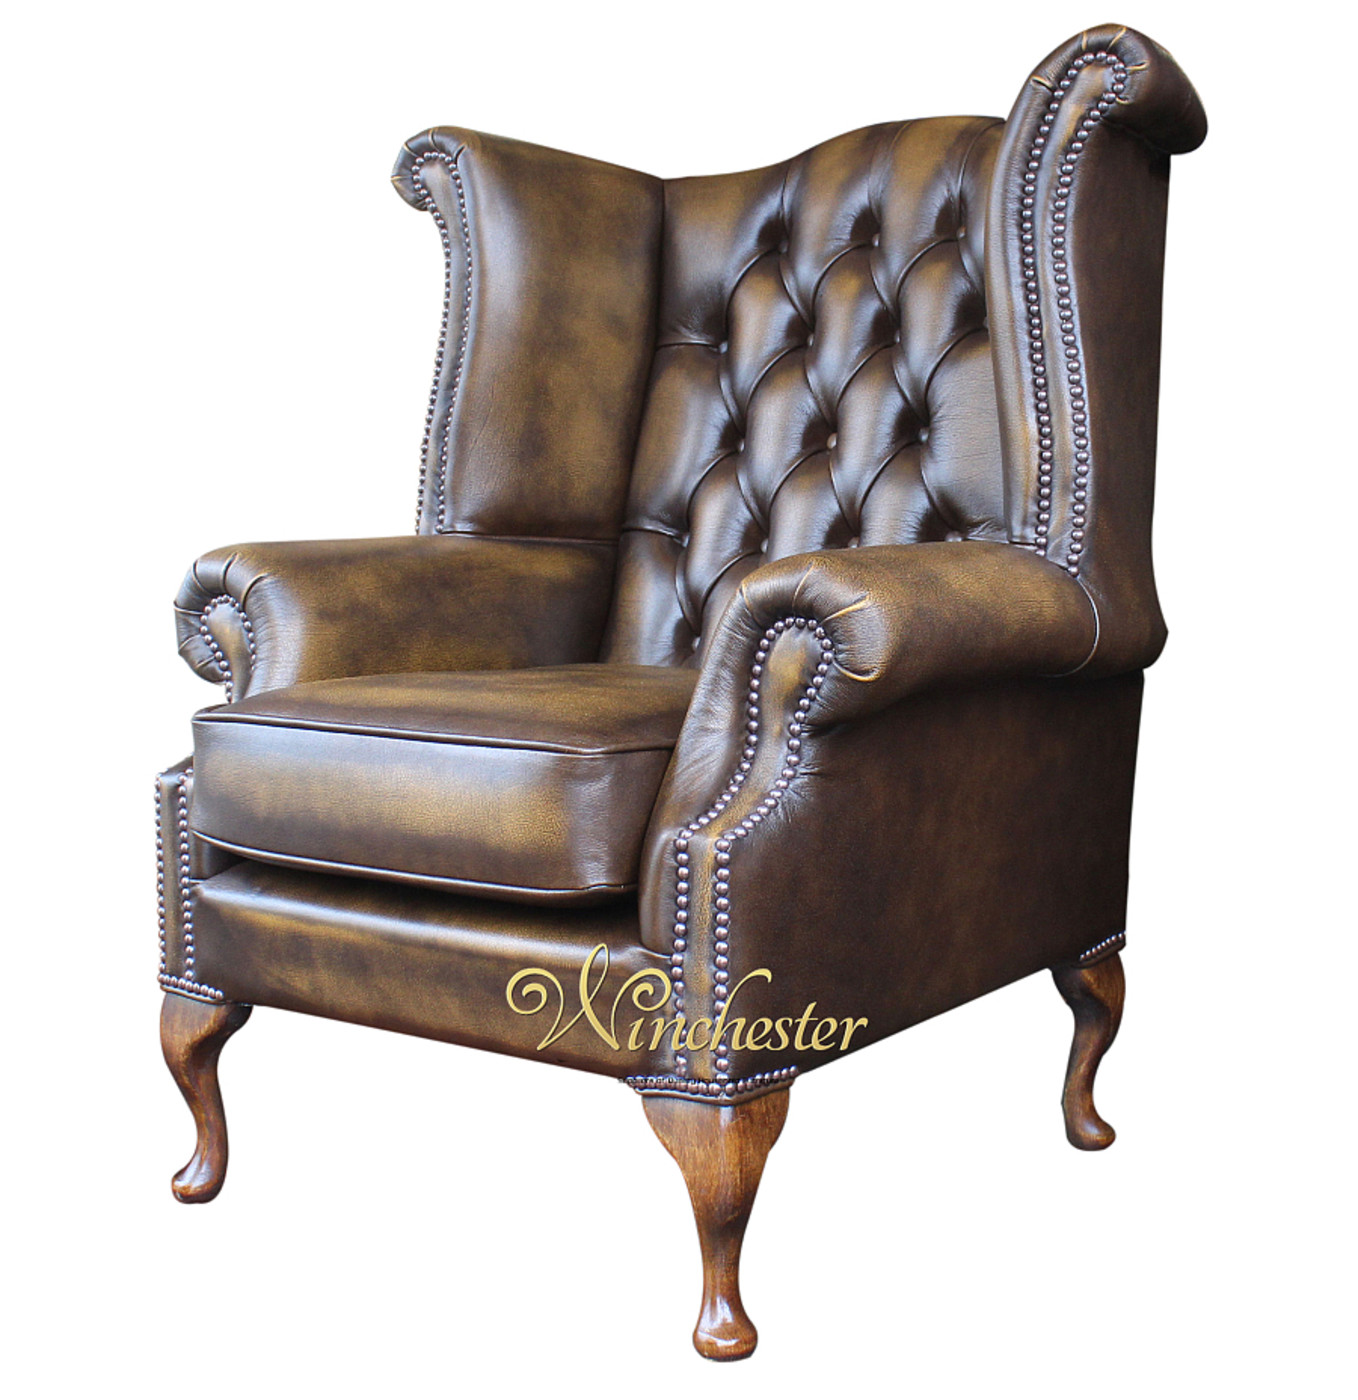 Chesterfield Queen Anne Armchair Antique Gold Leather Wc